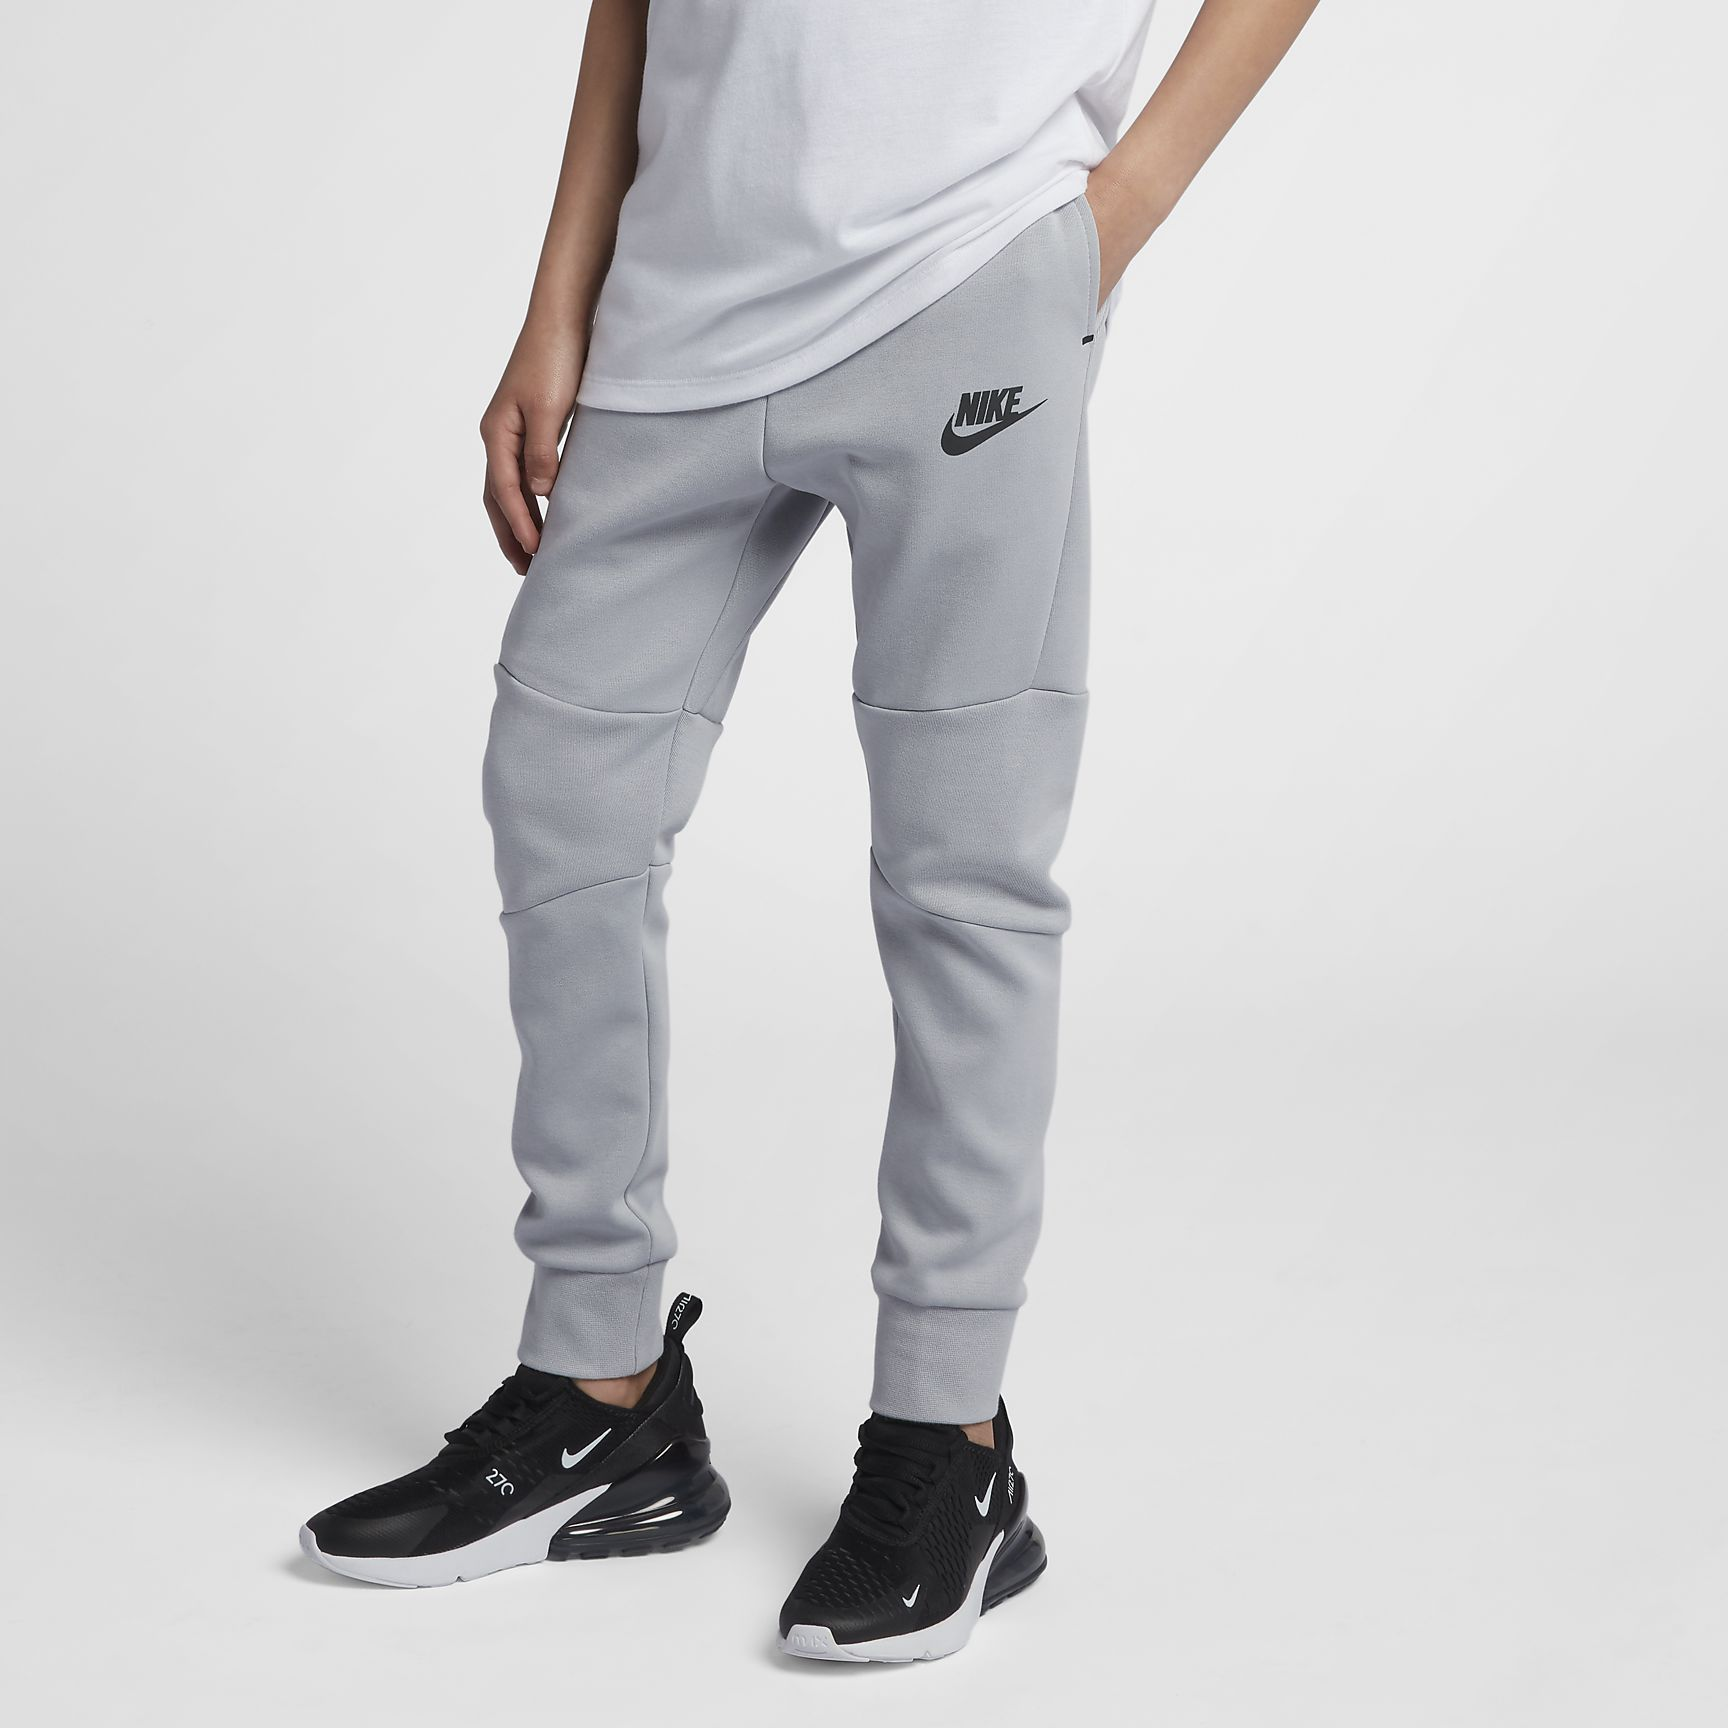 1d19cdedaaa84d Nike Sportswear Tech Fleece Big Kids  (Boys ) Pants